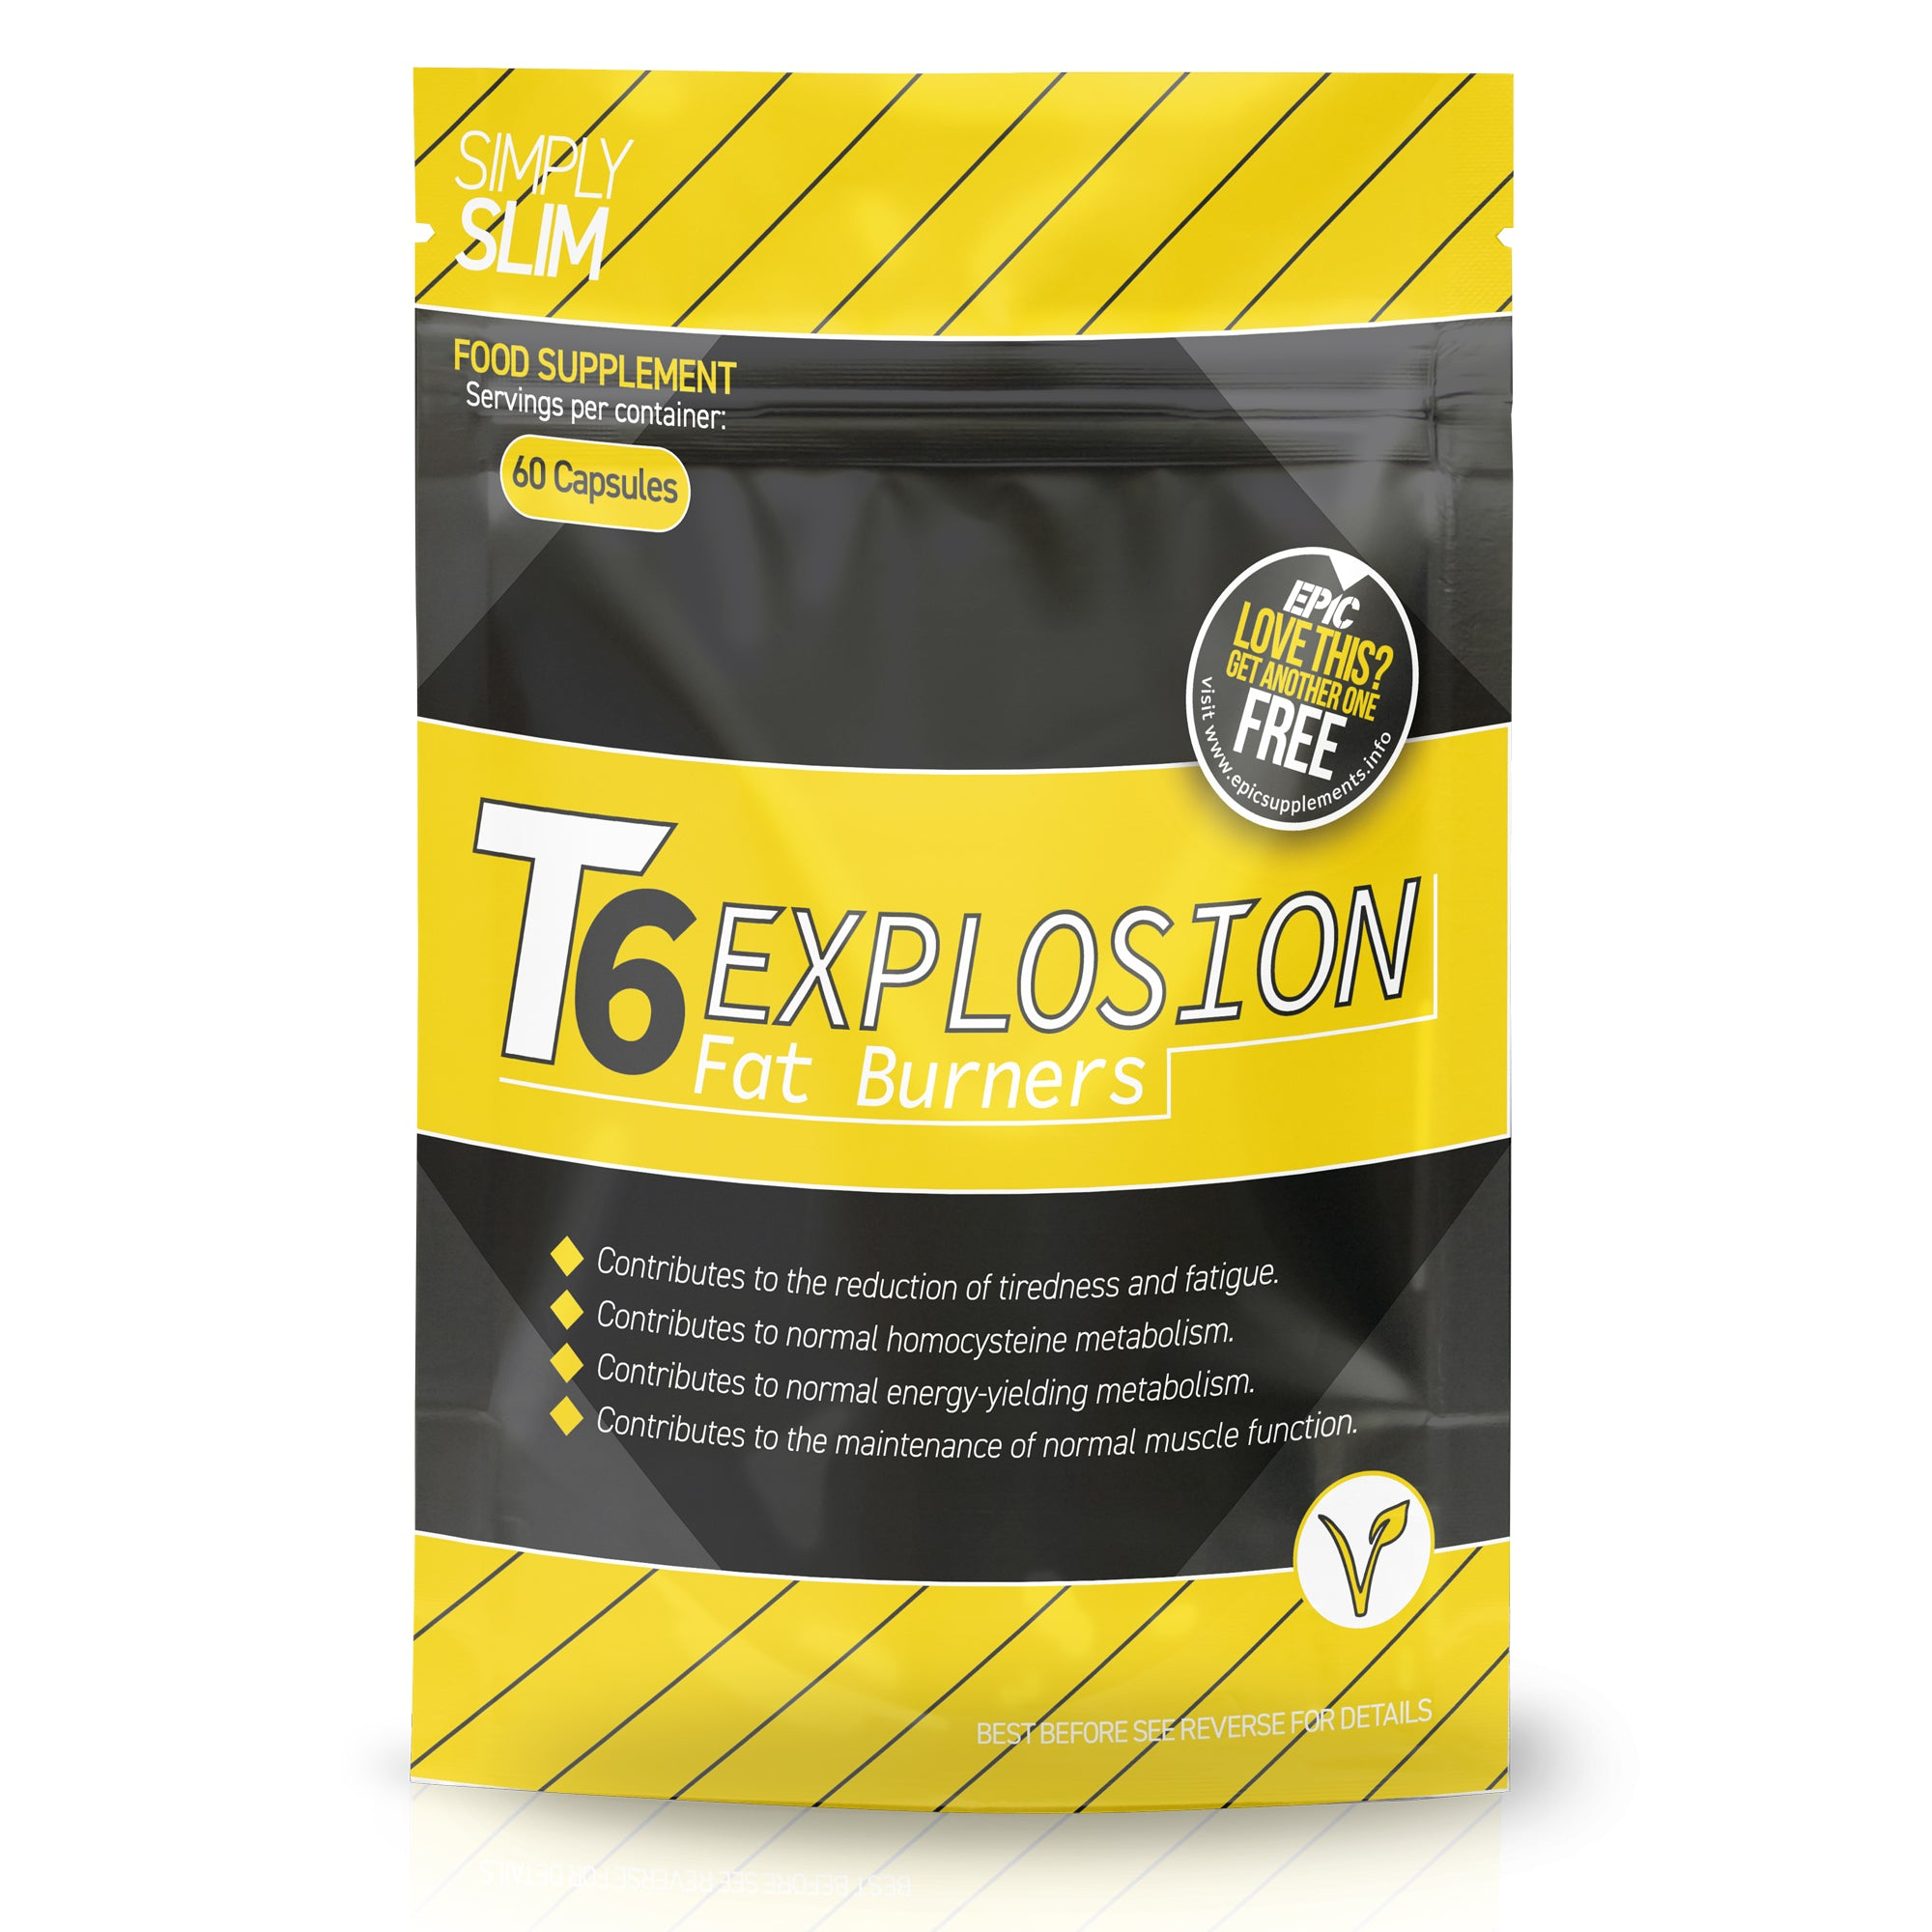 Simply Slim T6 Explosion Fat Burners